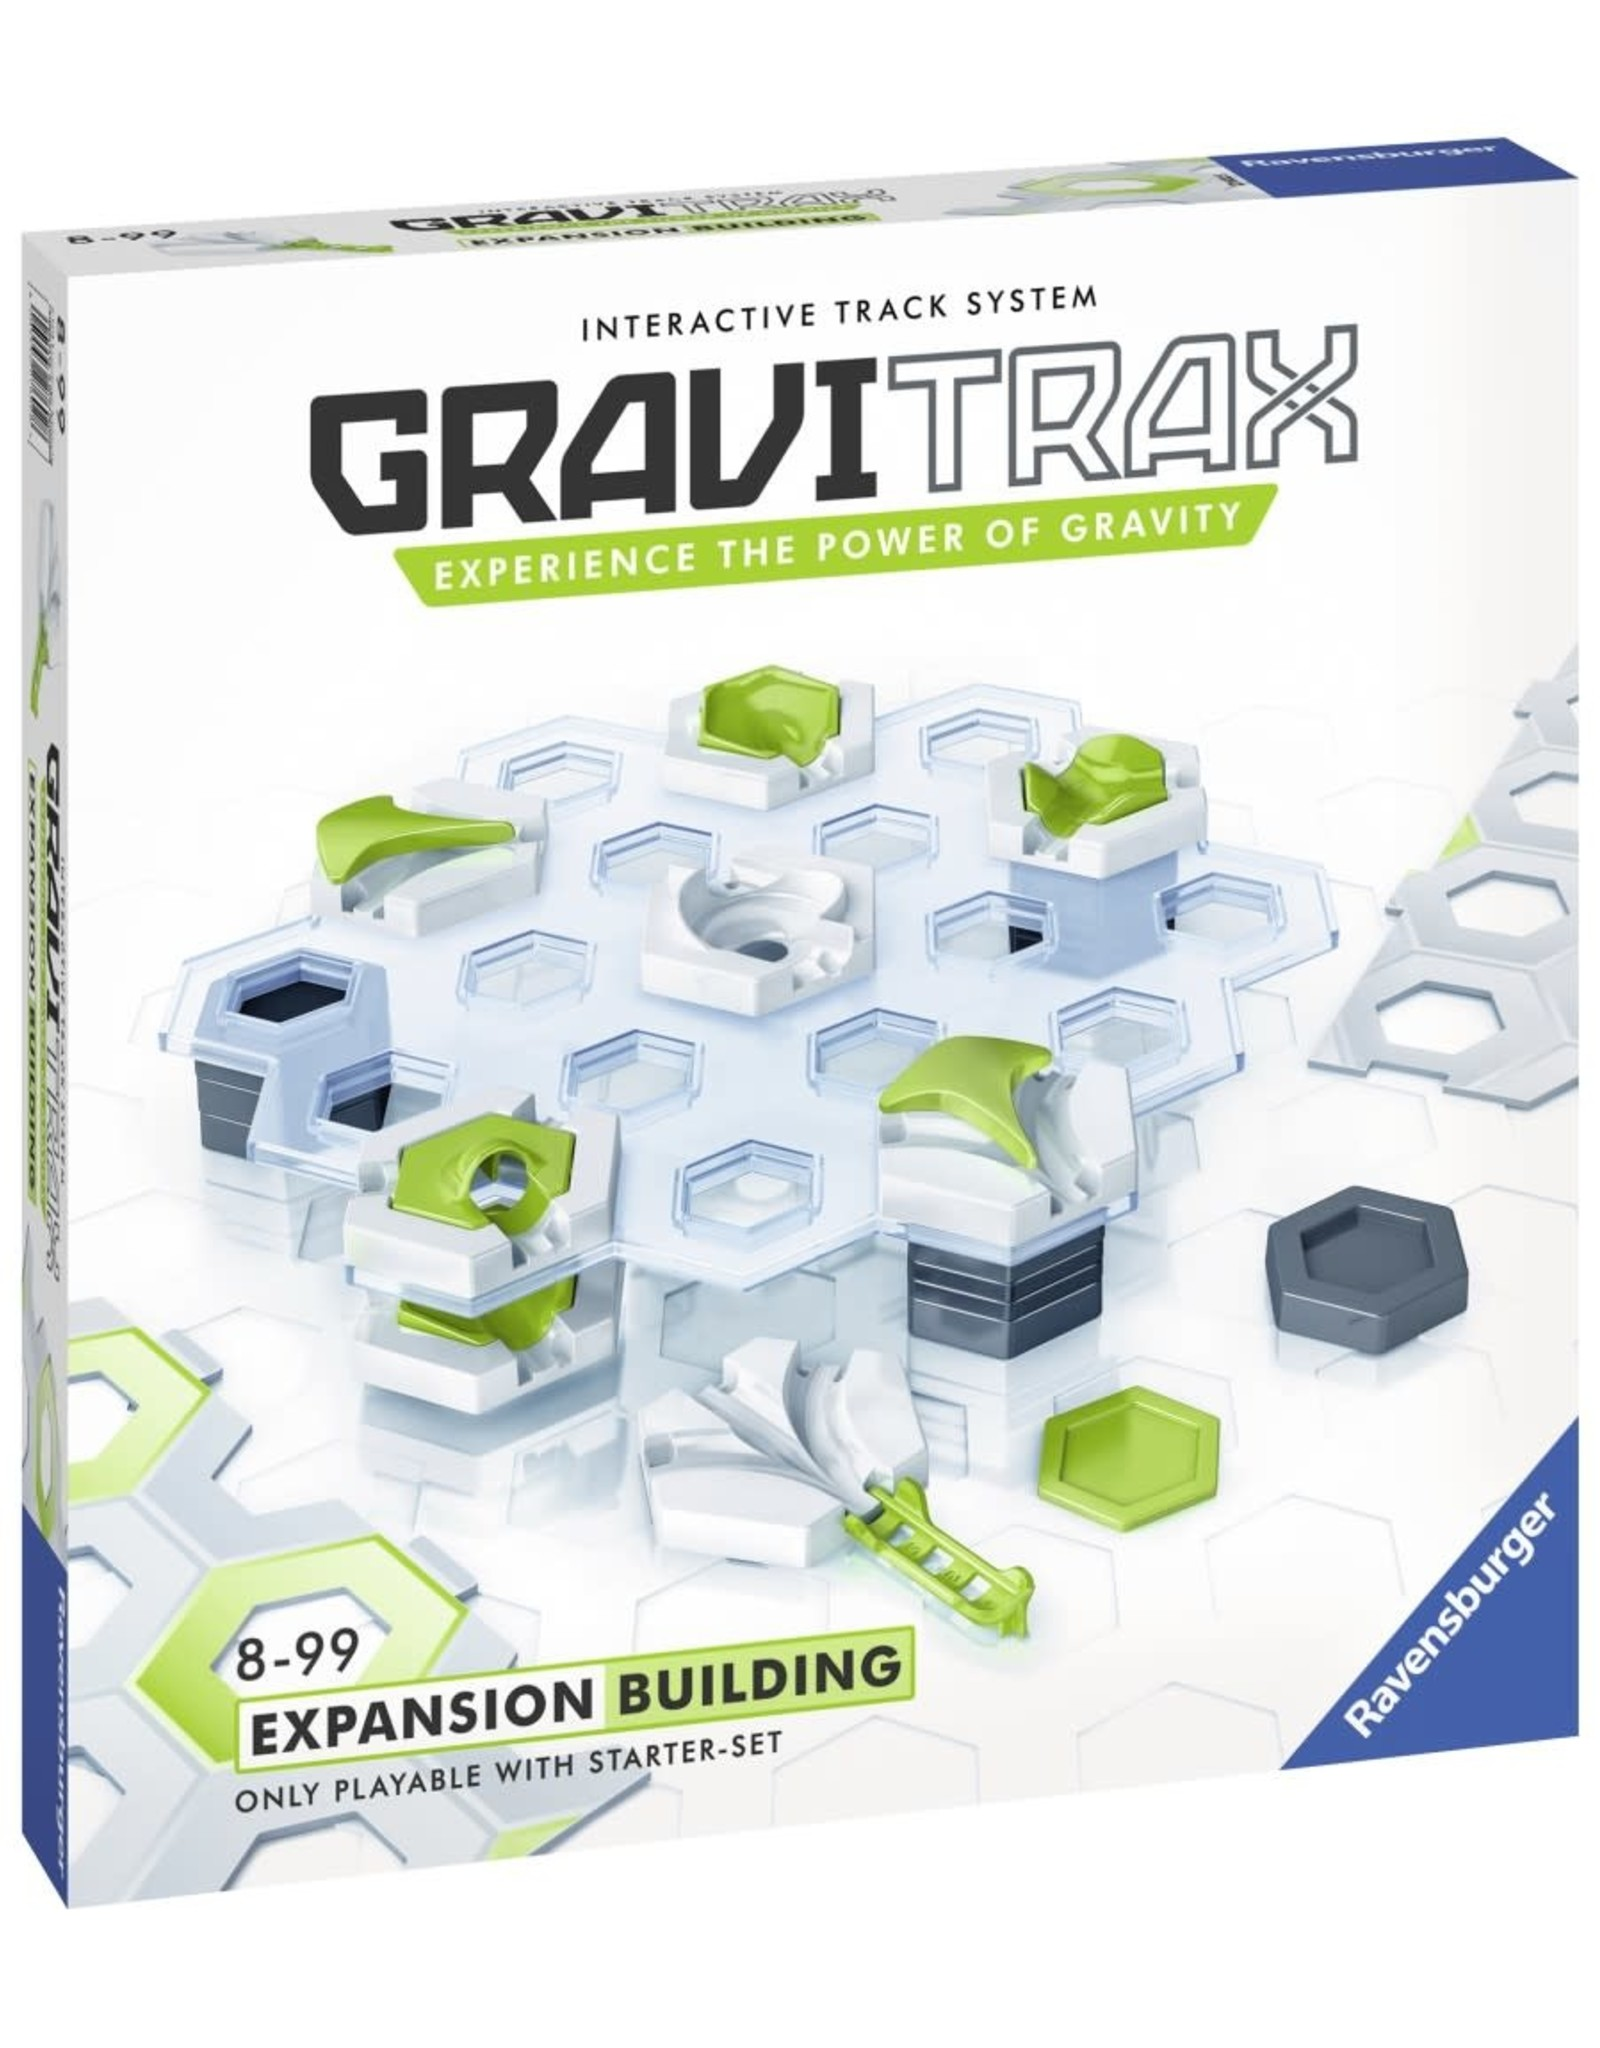 GraviTrax GraviTrax Expansion - Building